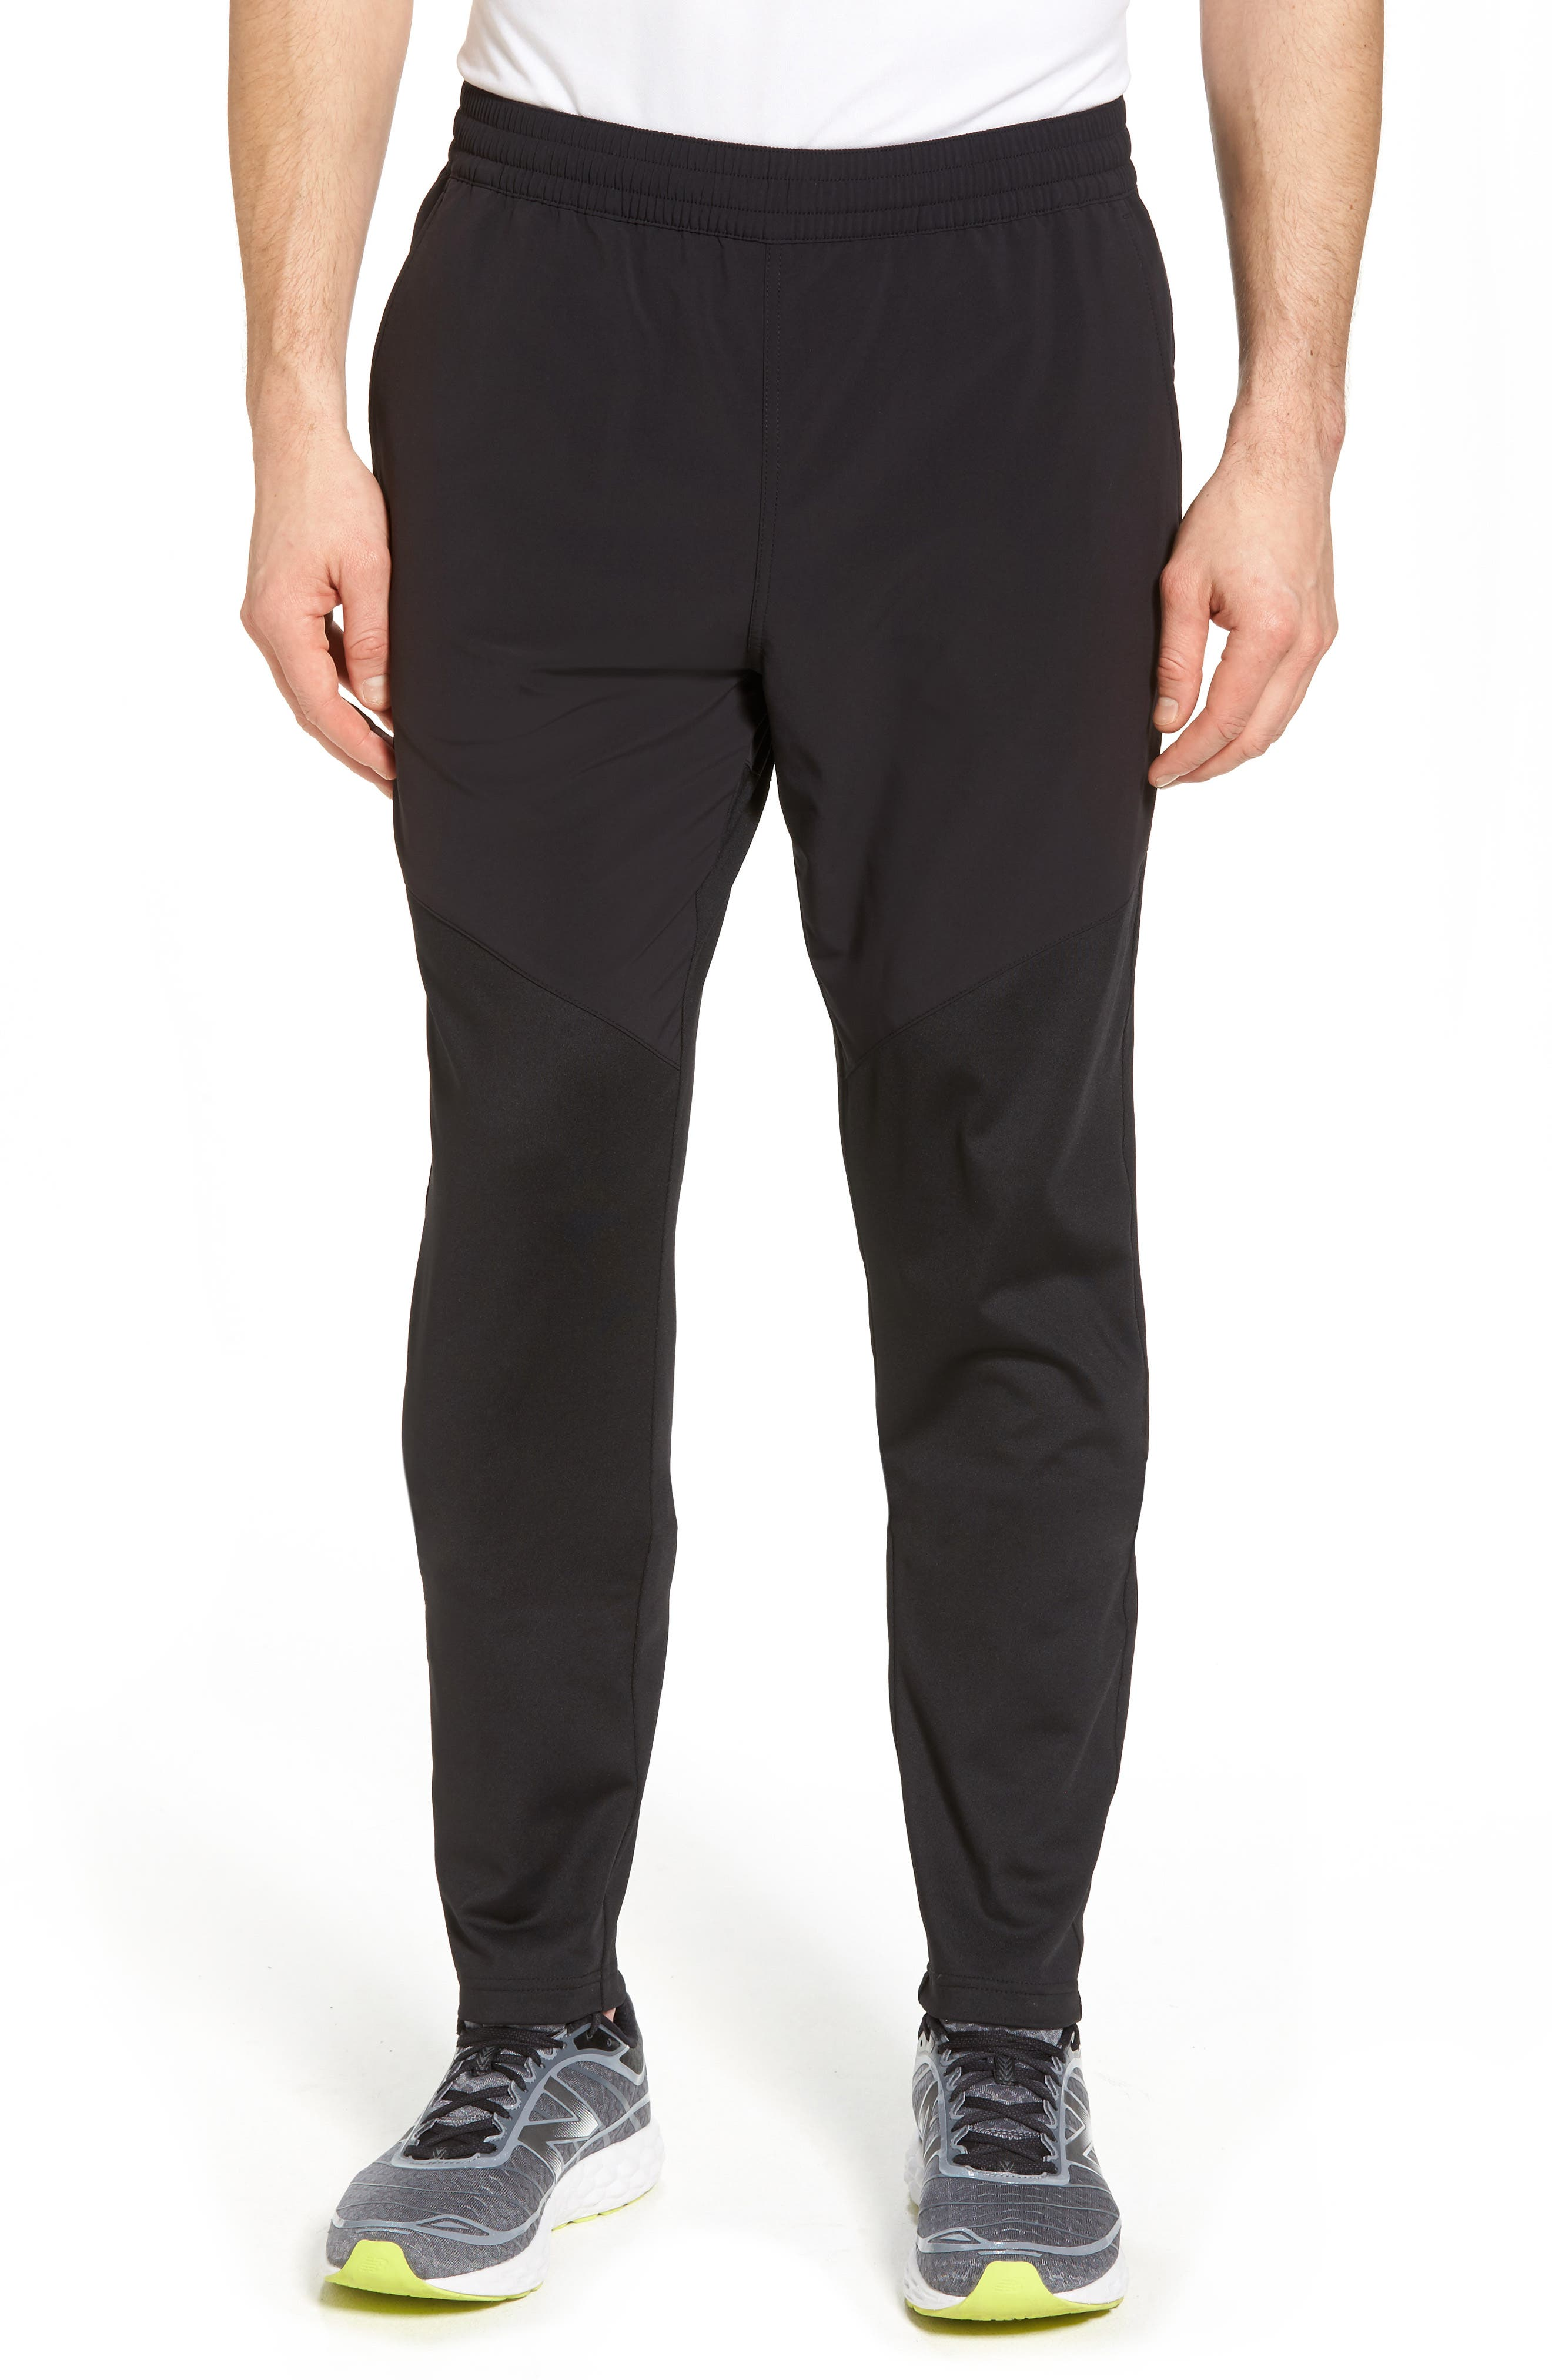 Graphite Tapered Athletic Pants,                             Main thumbnail 1, color,                             Black